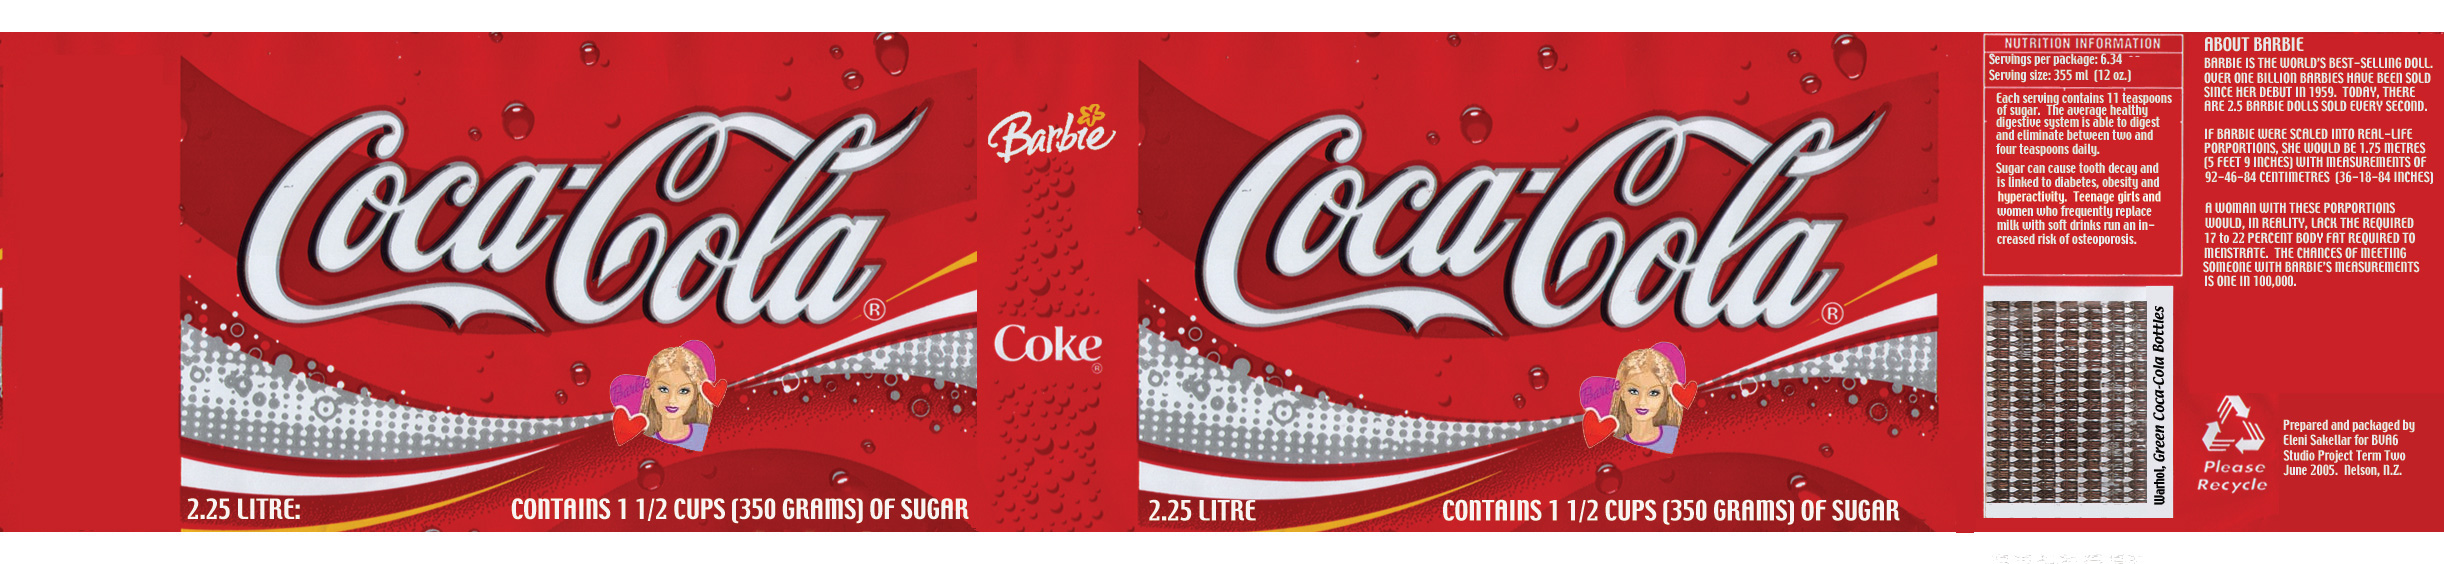 Coca cola ads images amp pictures becuo - 1 Http Www Elenisakellar Com Wp Content Gallery Un